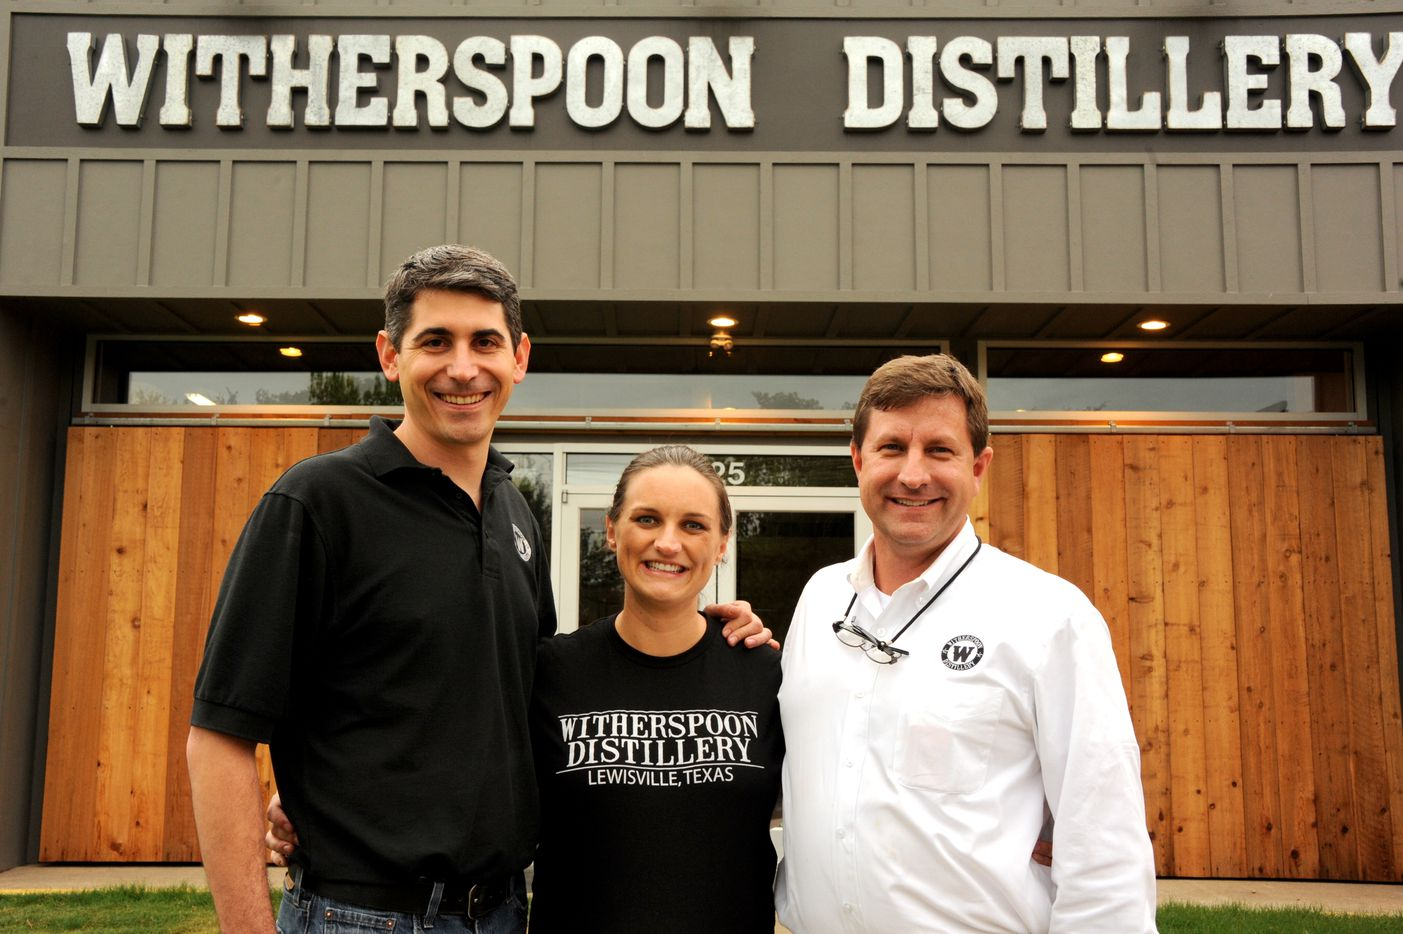 Founders Ryan DeHart and Natasha DeHart with Master Distiller Quentin Witherspoon at Witherspoon Distillery in Lewisville, TX on October 24, 2015.